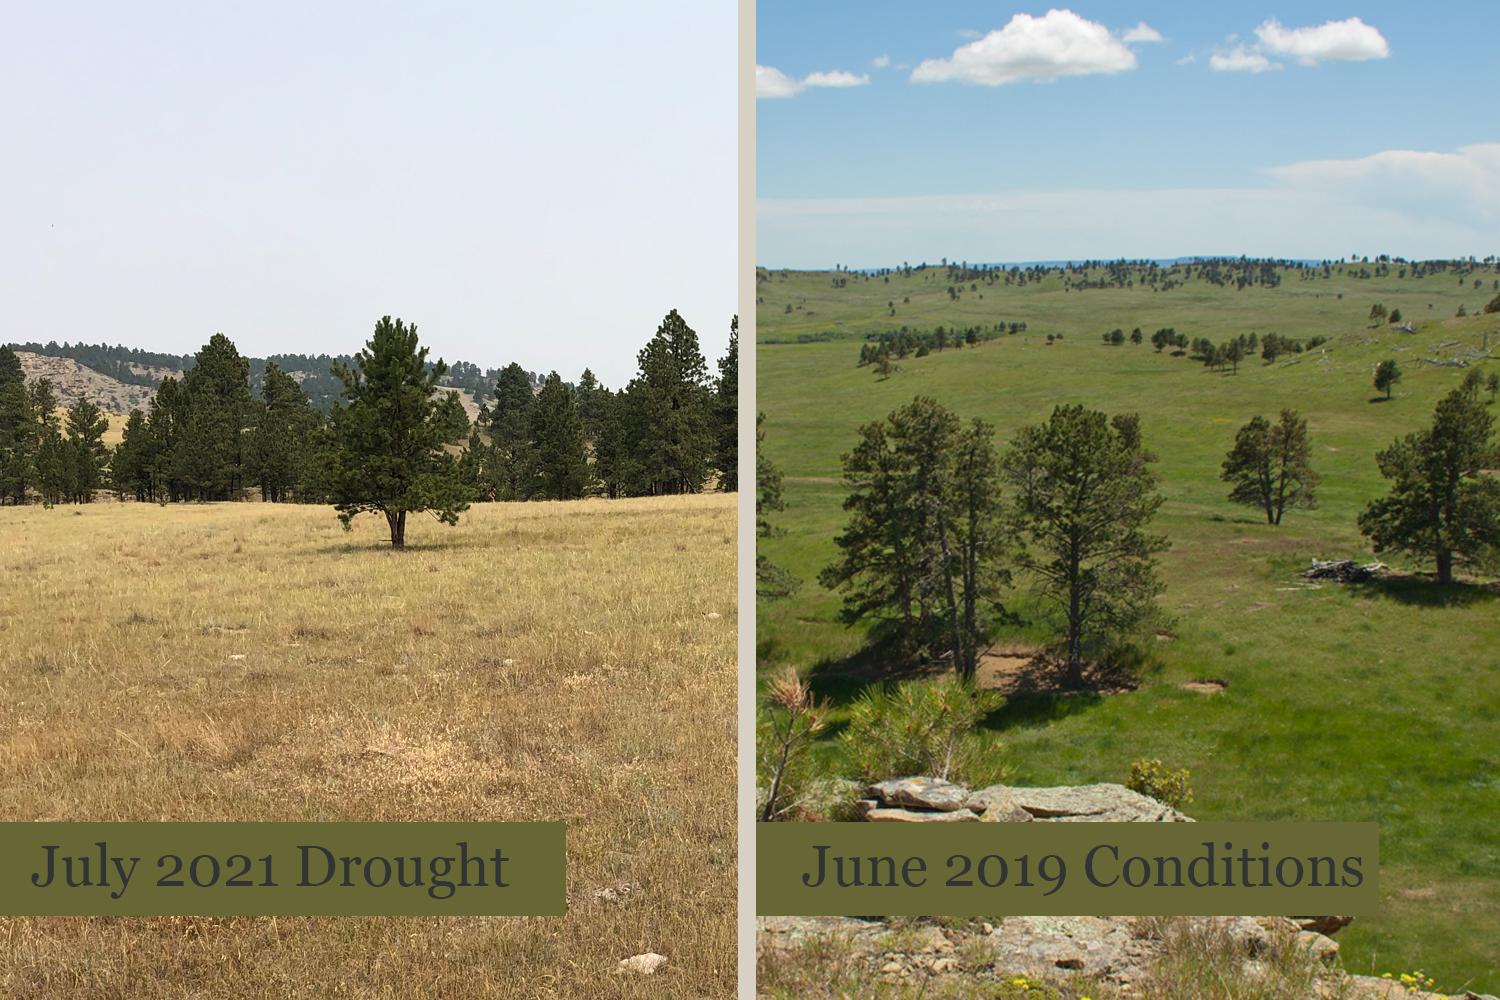 A look at current drought conditions